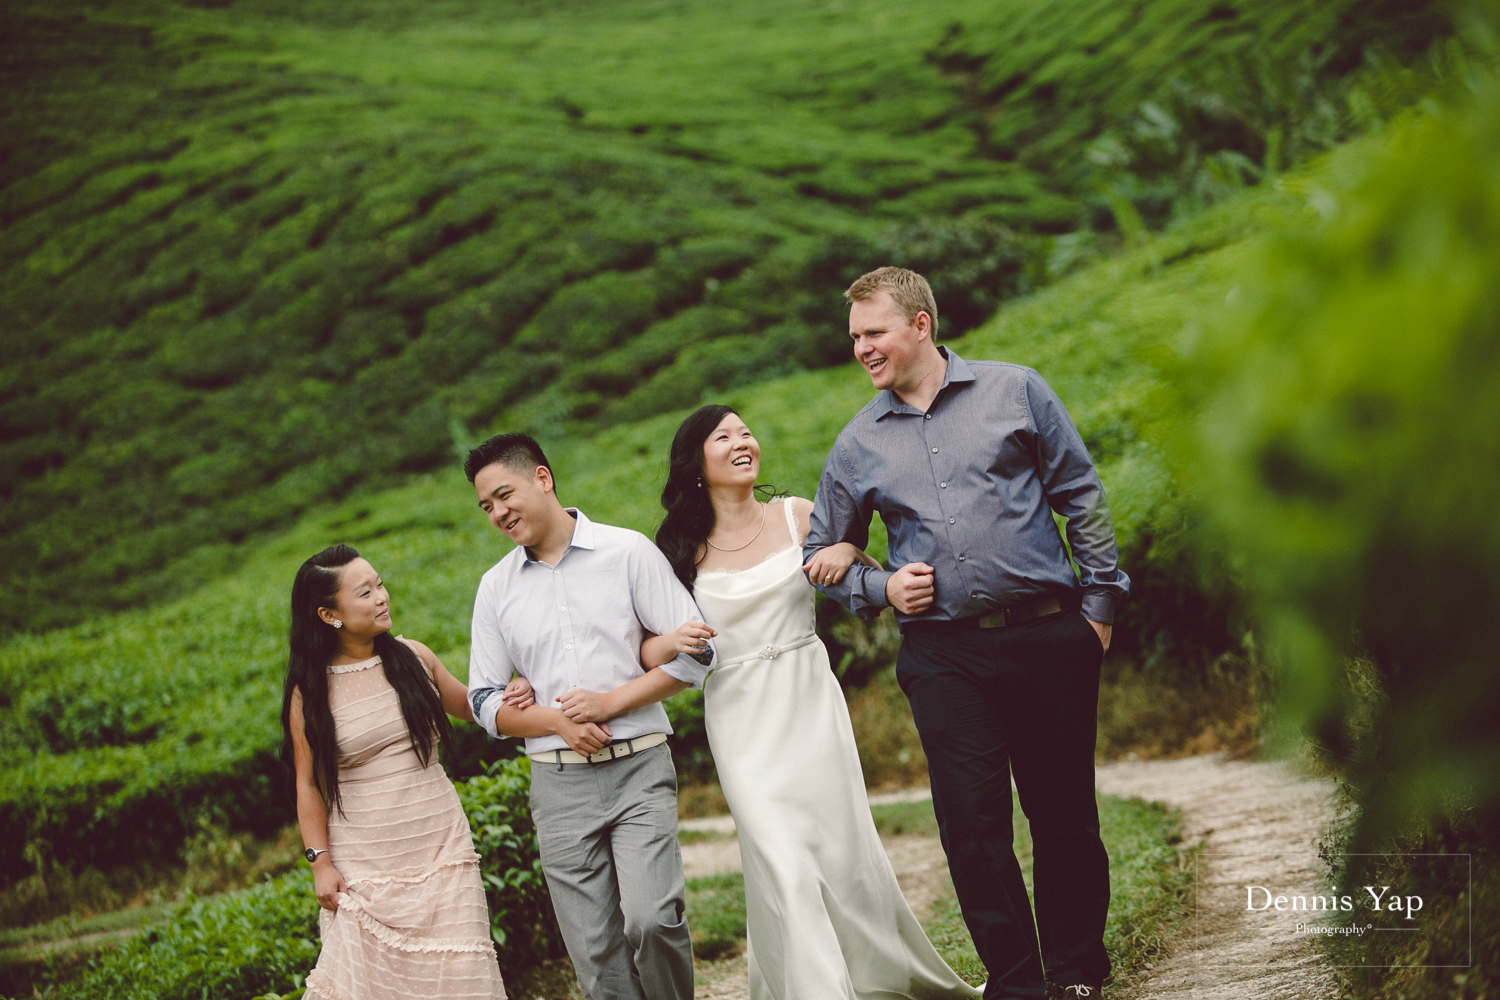 kurt eunice wedding day in cameron highlands resort dennis yap photography small wedding-30.jpg